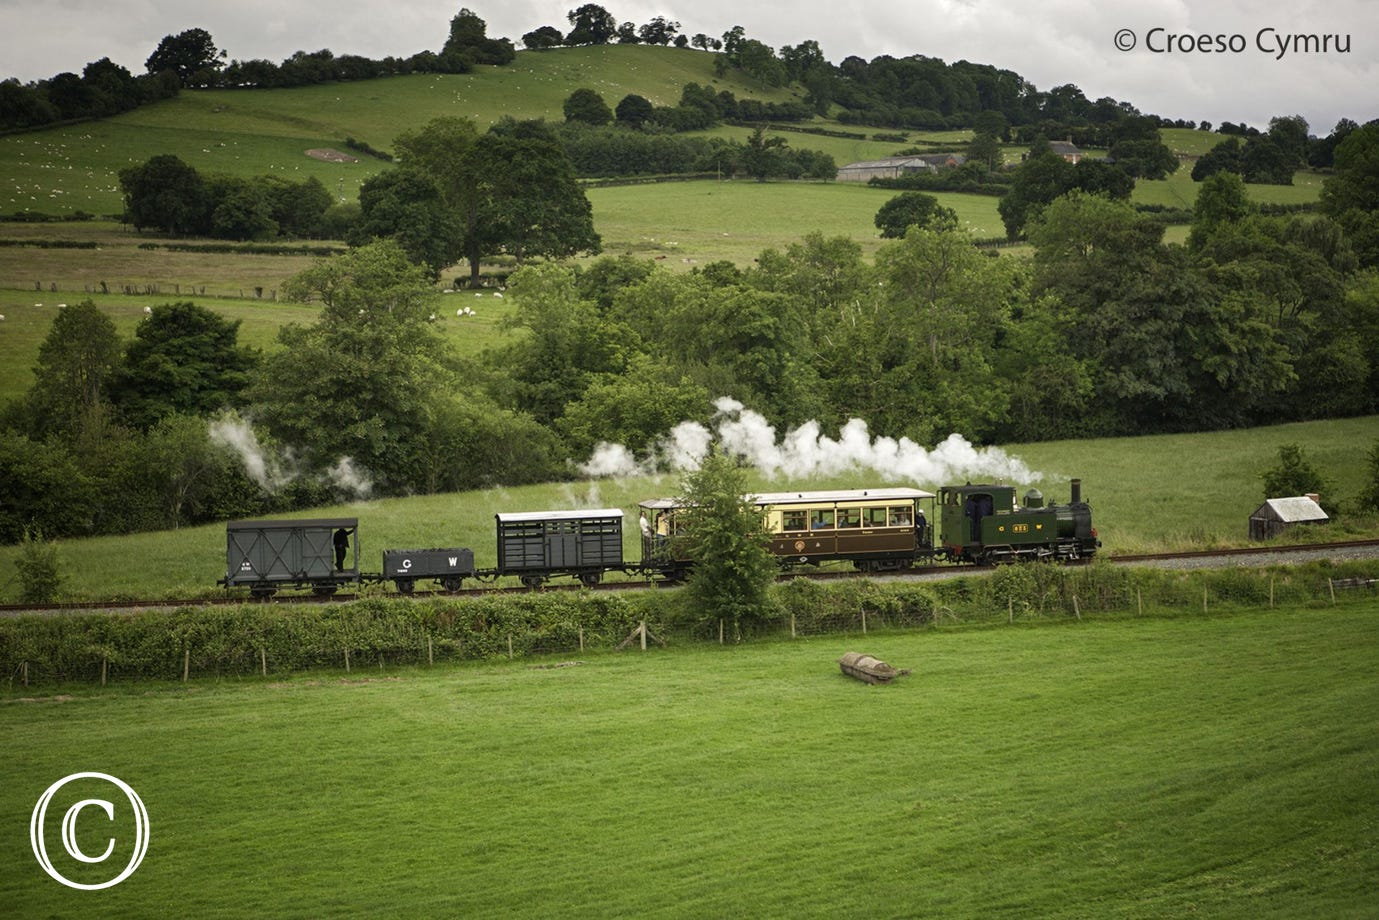 Popular narrow-gauge railway running between Llanfair and Welshpool